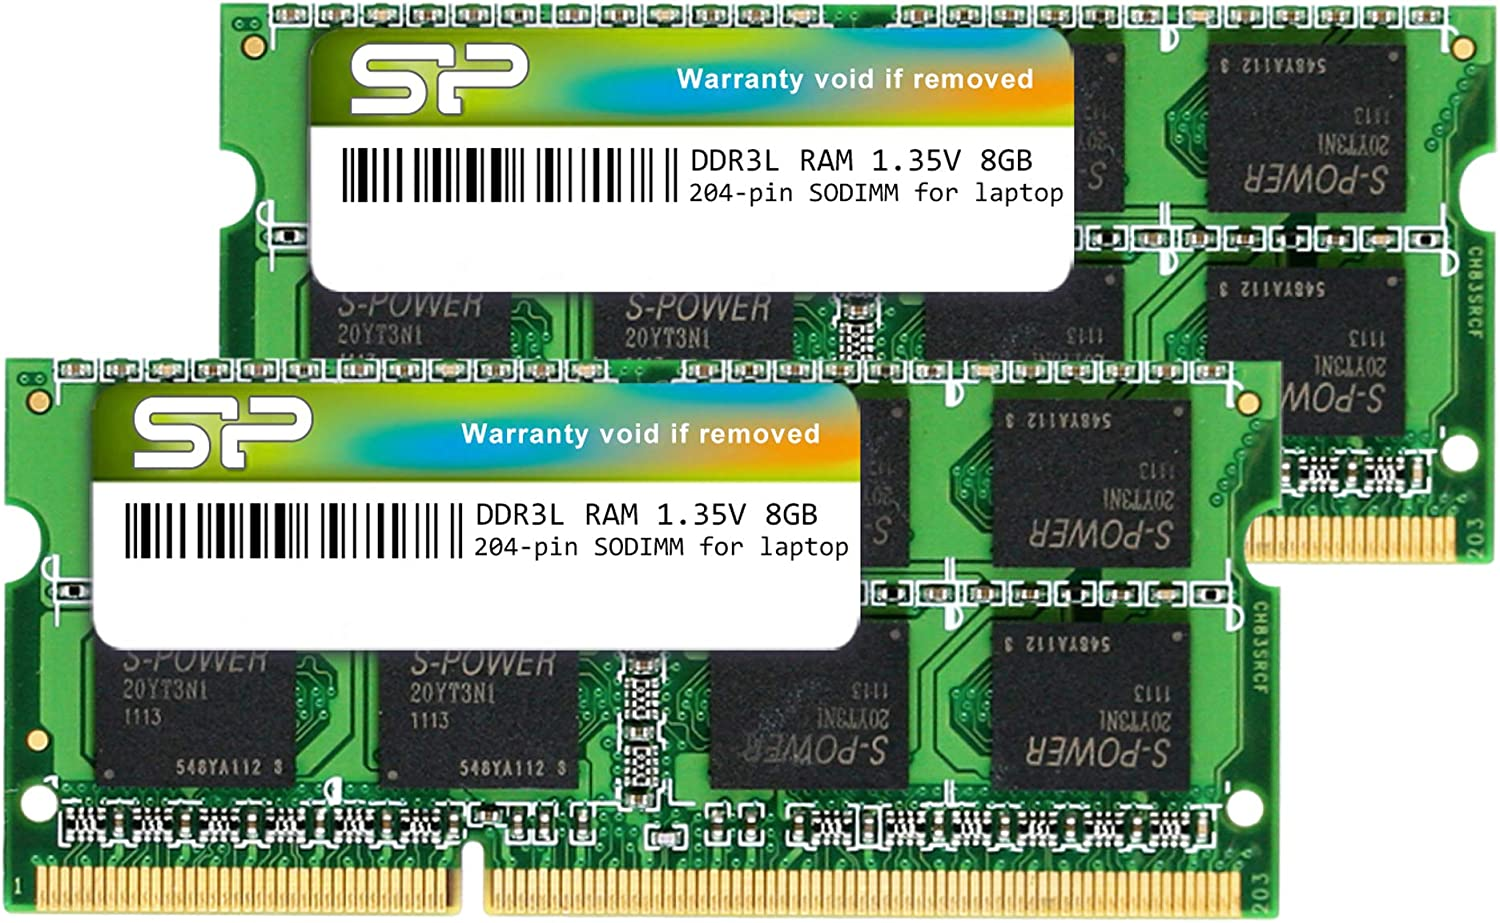 Silicon Power DDR3L 16GB (2 x 8GB) RAM 1600MHz (PC3 12800) SODIMM Memory Compatible with Early/Mid/Late 2011, Mid/Late 2012, Early/Late 2013, Late 2014, Mid 2015 MacBook Pro, iMac, Mac Mini